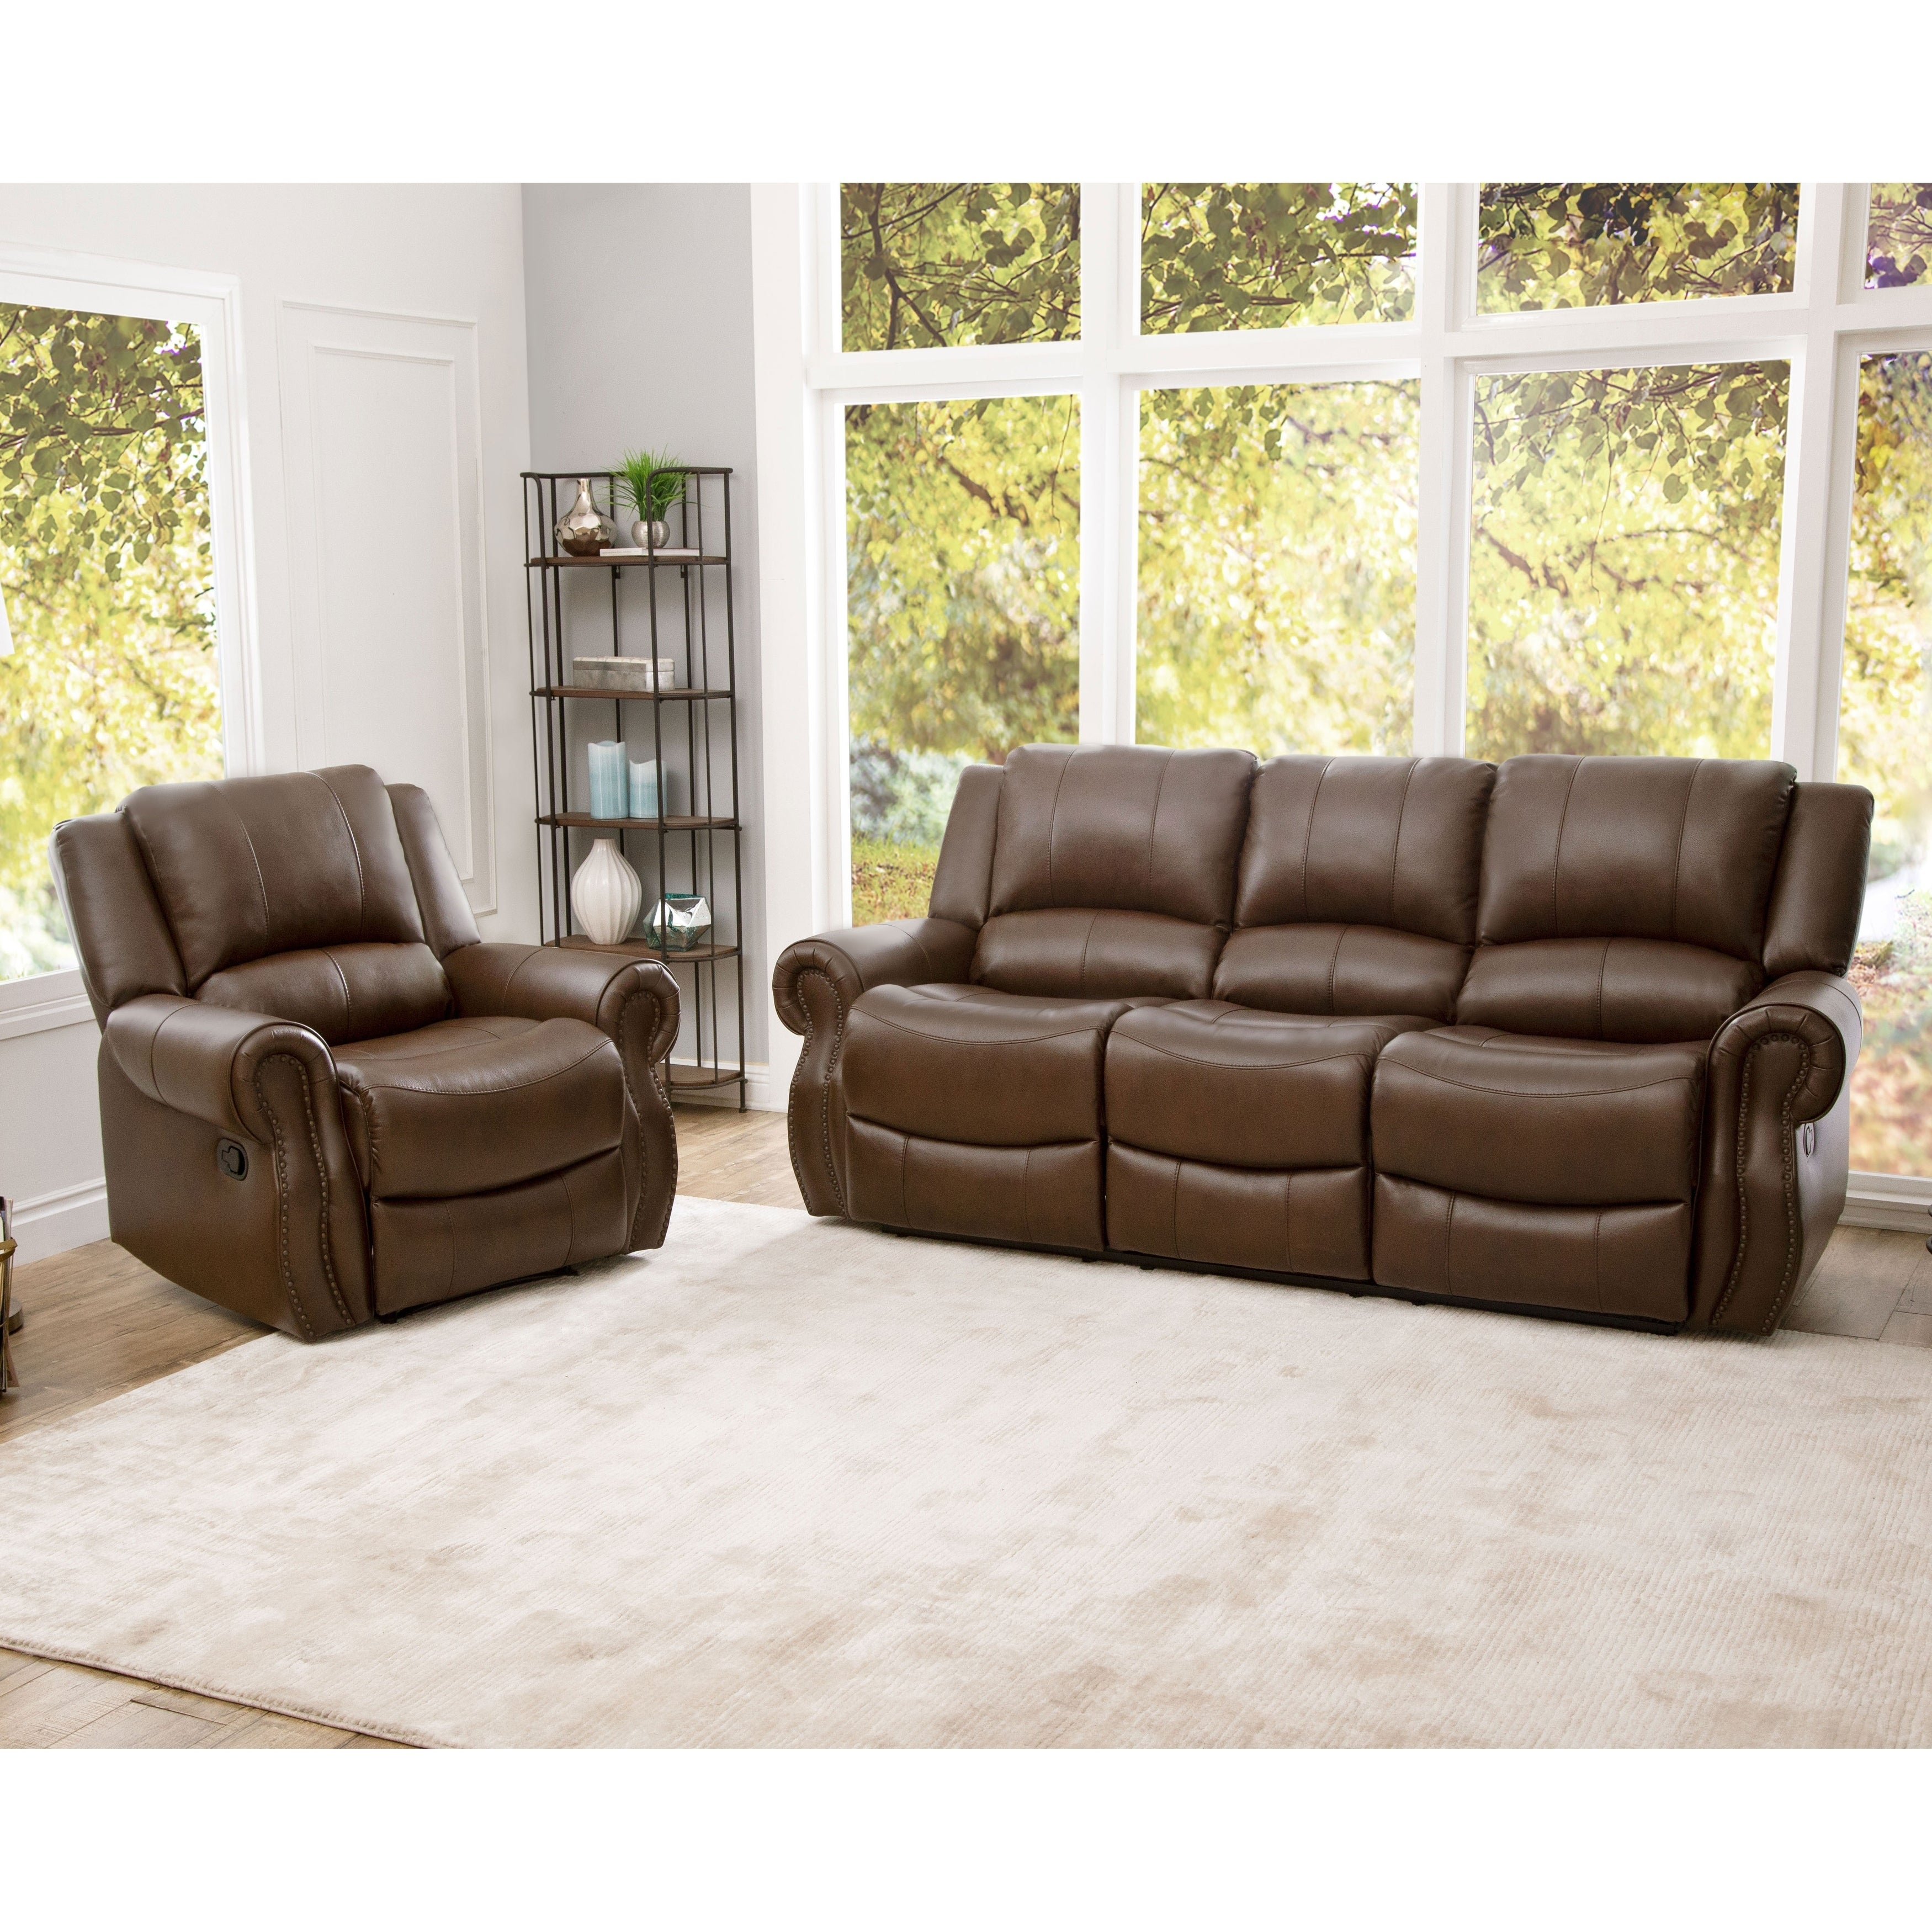 Abbyson Calabasas Mesa Brown Leather 2 Piece Reclining Living Room Set (Brown - Faux Leather - Recliners/Sets)